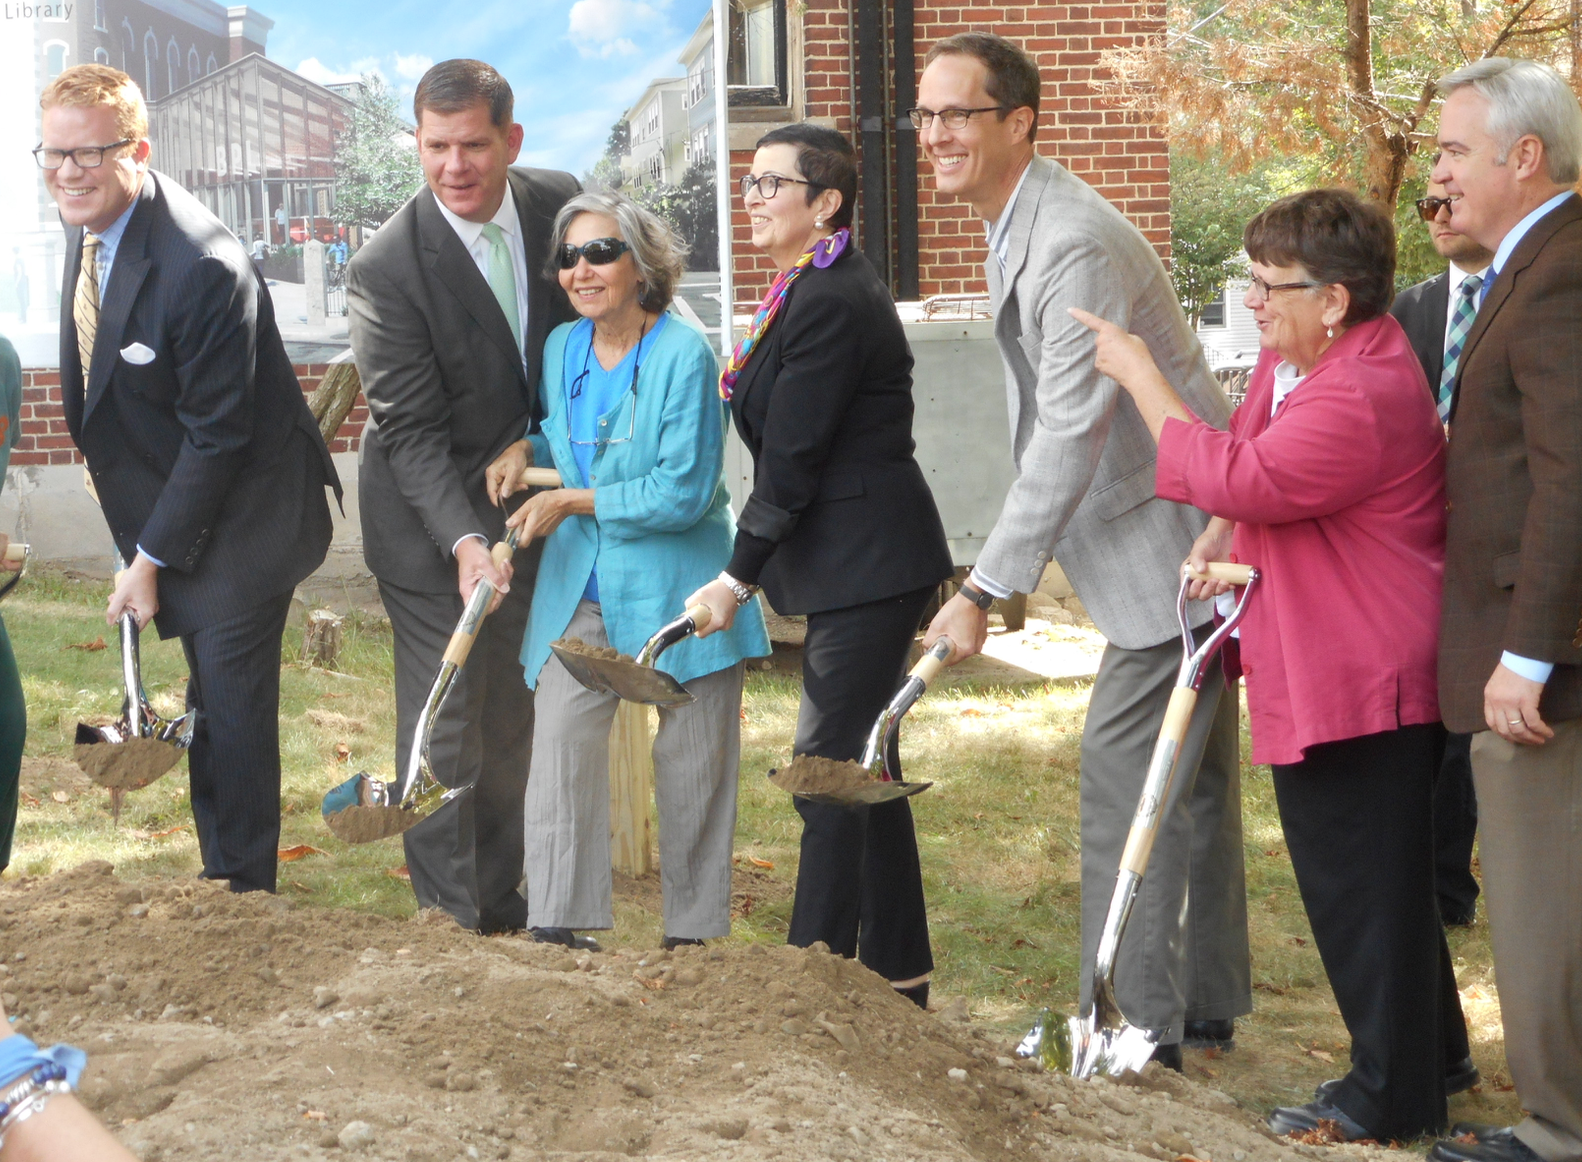 A new library for Jamaica Plain: District 6 City Councilor Matt O'Malley, Mayor Marty Walsh, JP Friends Co-chair Don Haber, State Rep Liz Malia and At-large City Councilor Michael Flaherty